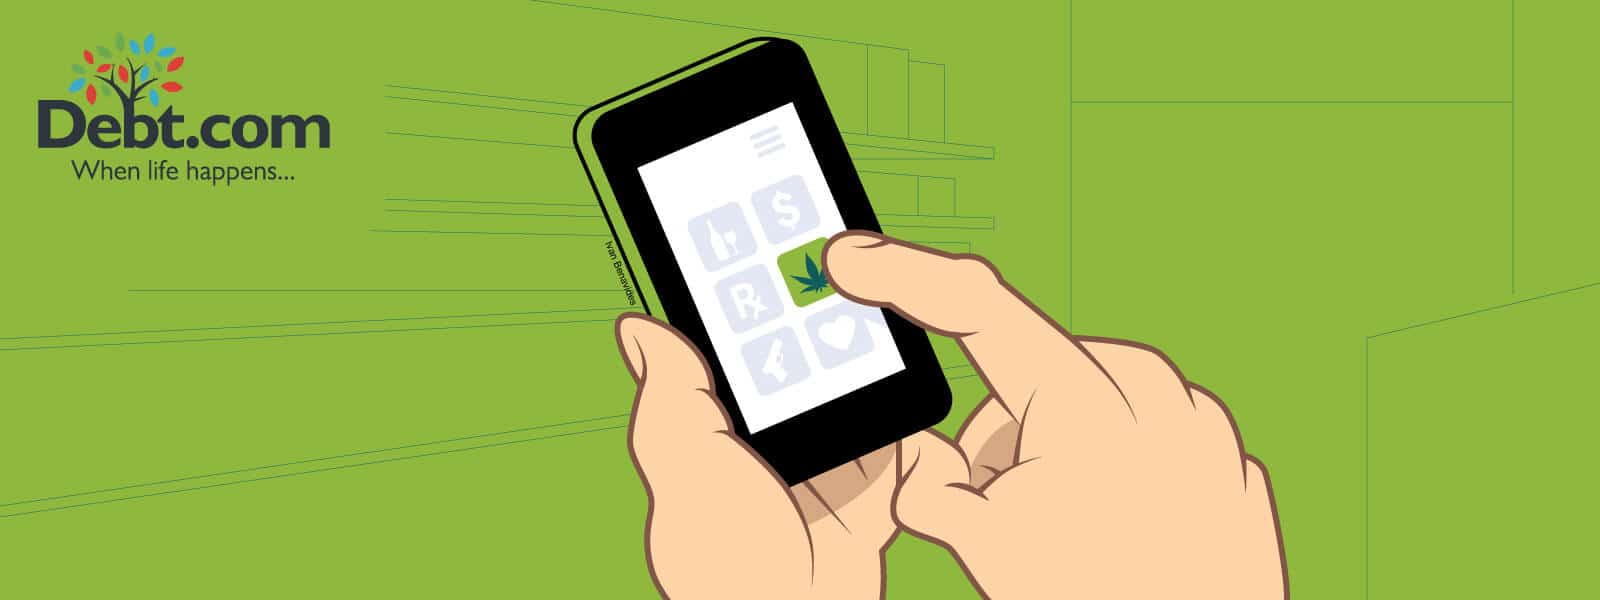 Debt.com Illustration by Ivan Benavides: Smartphone app to order delivery service from a marijuana dispensary